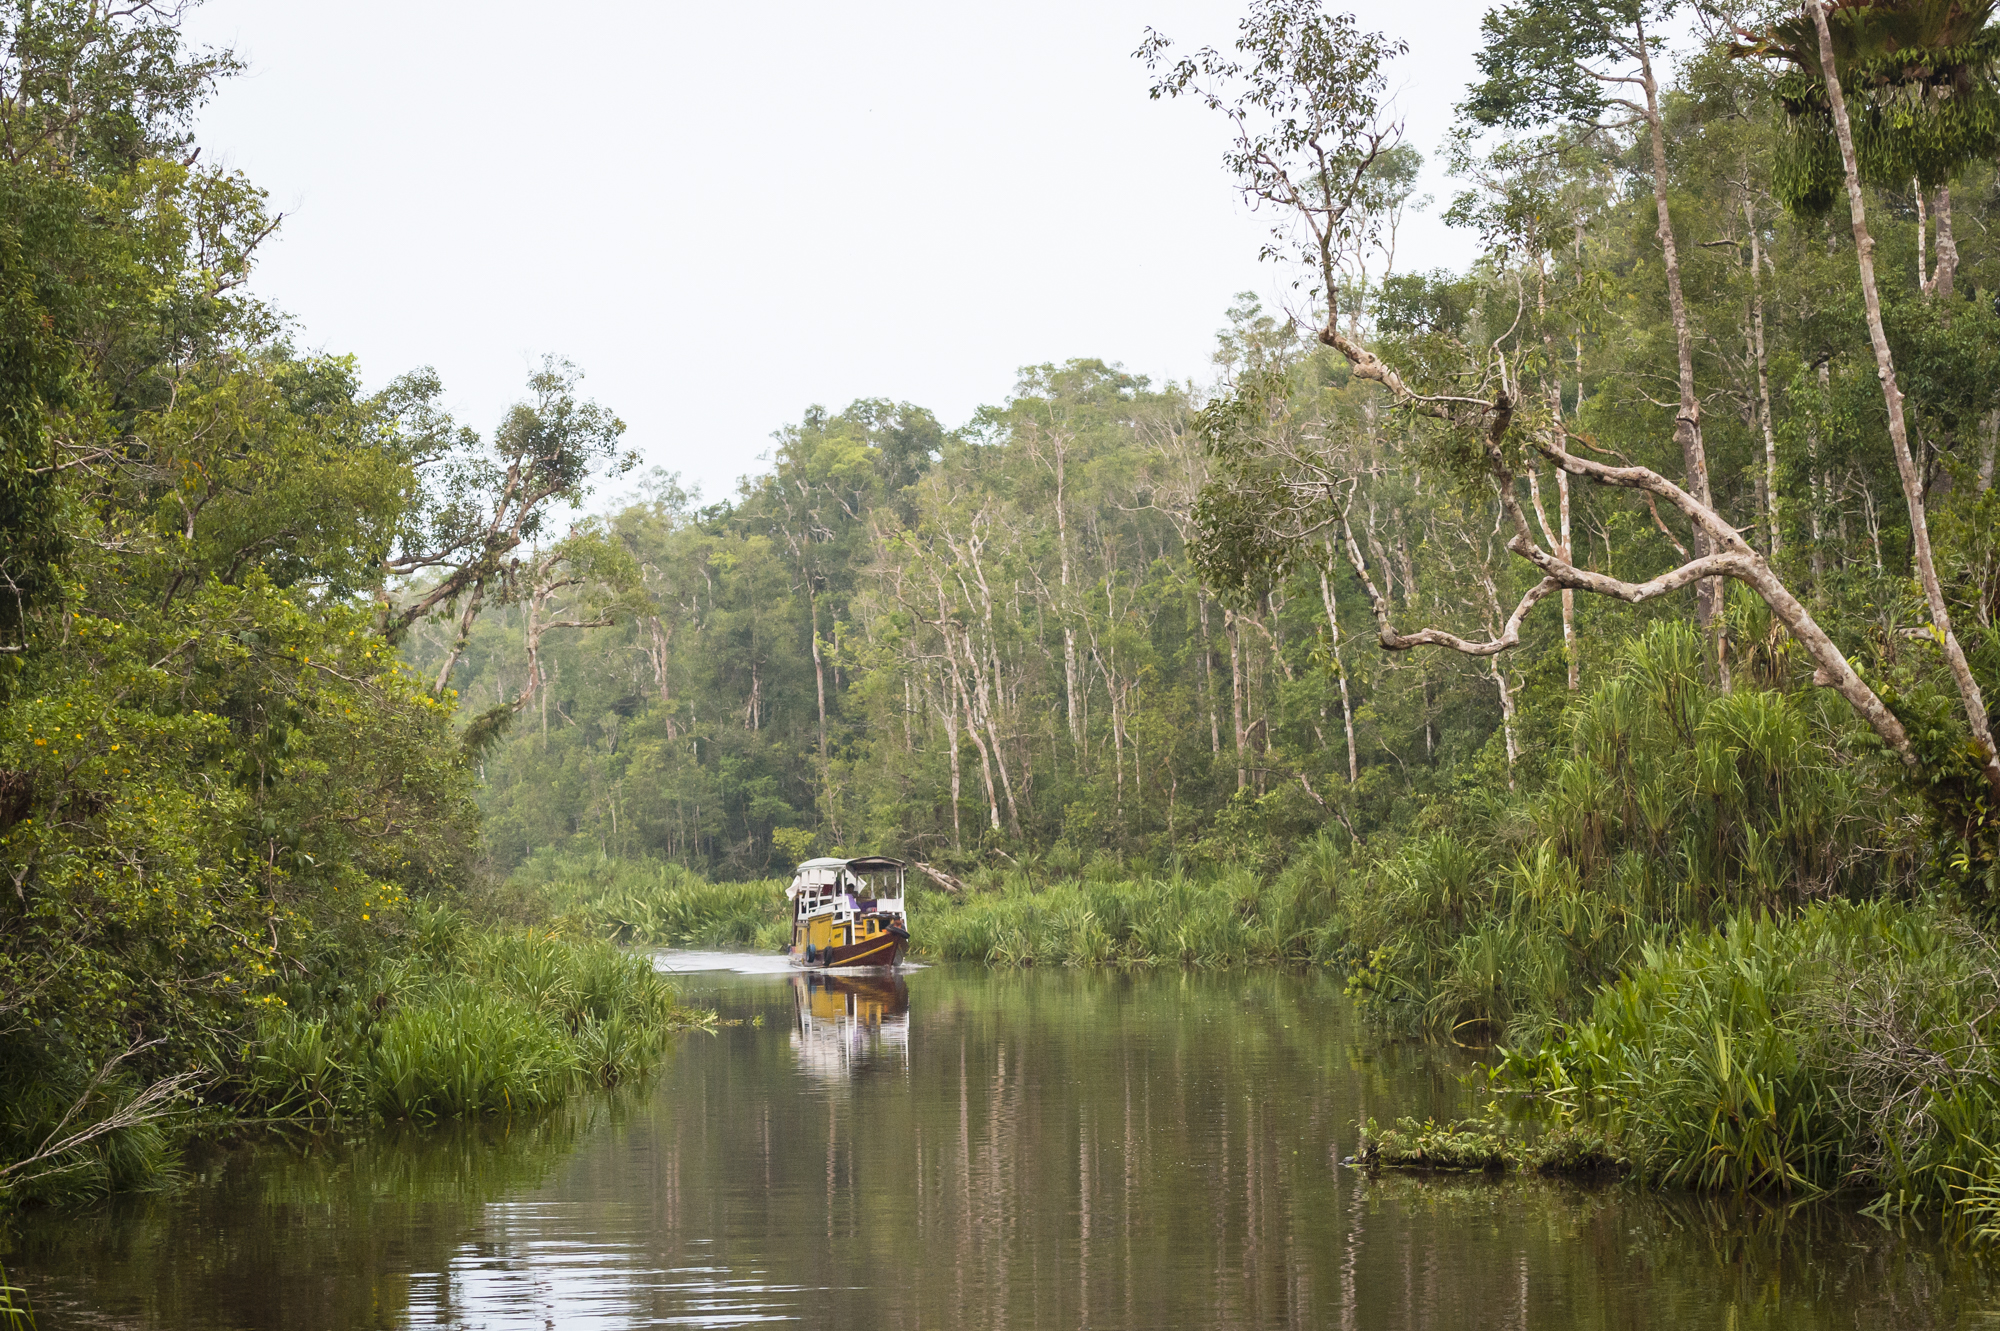 Home for the next week. - Heading down the Sekonyer River, deep into Tanjung Puting National Park, Borneo in search of wild orangoutangs.